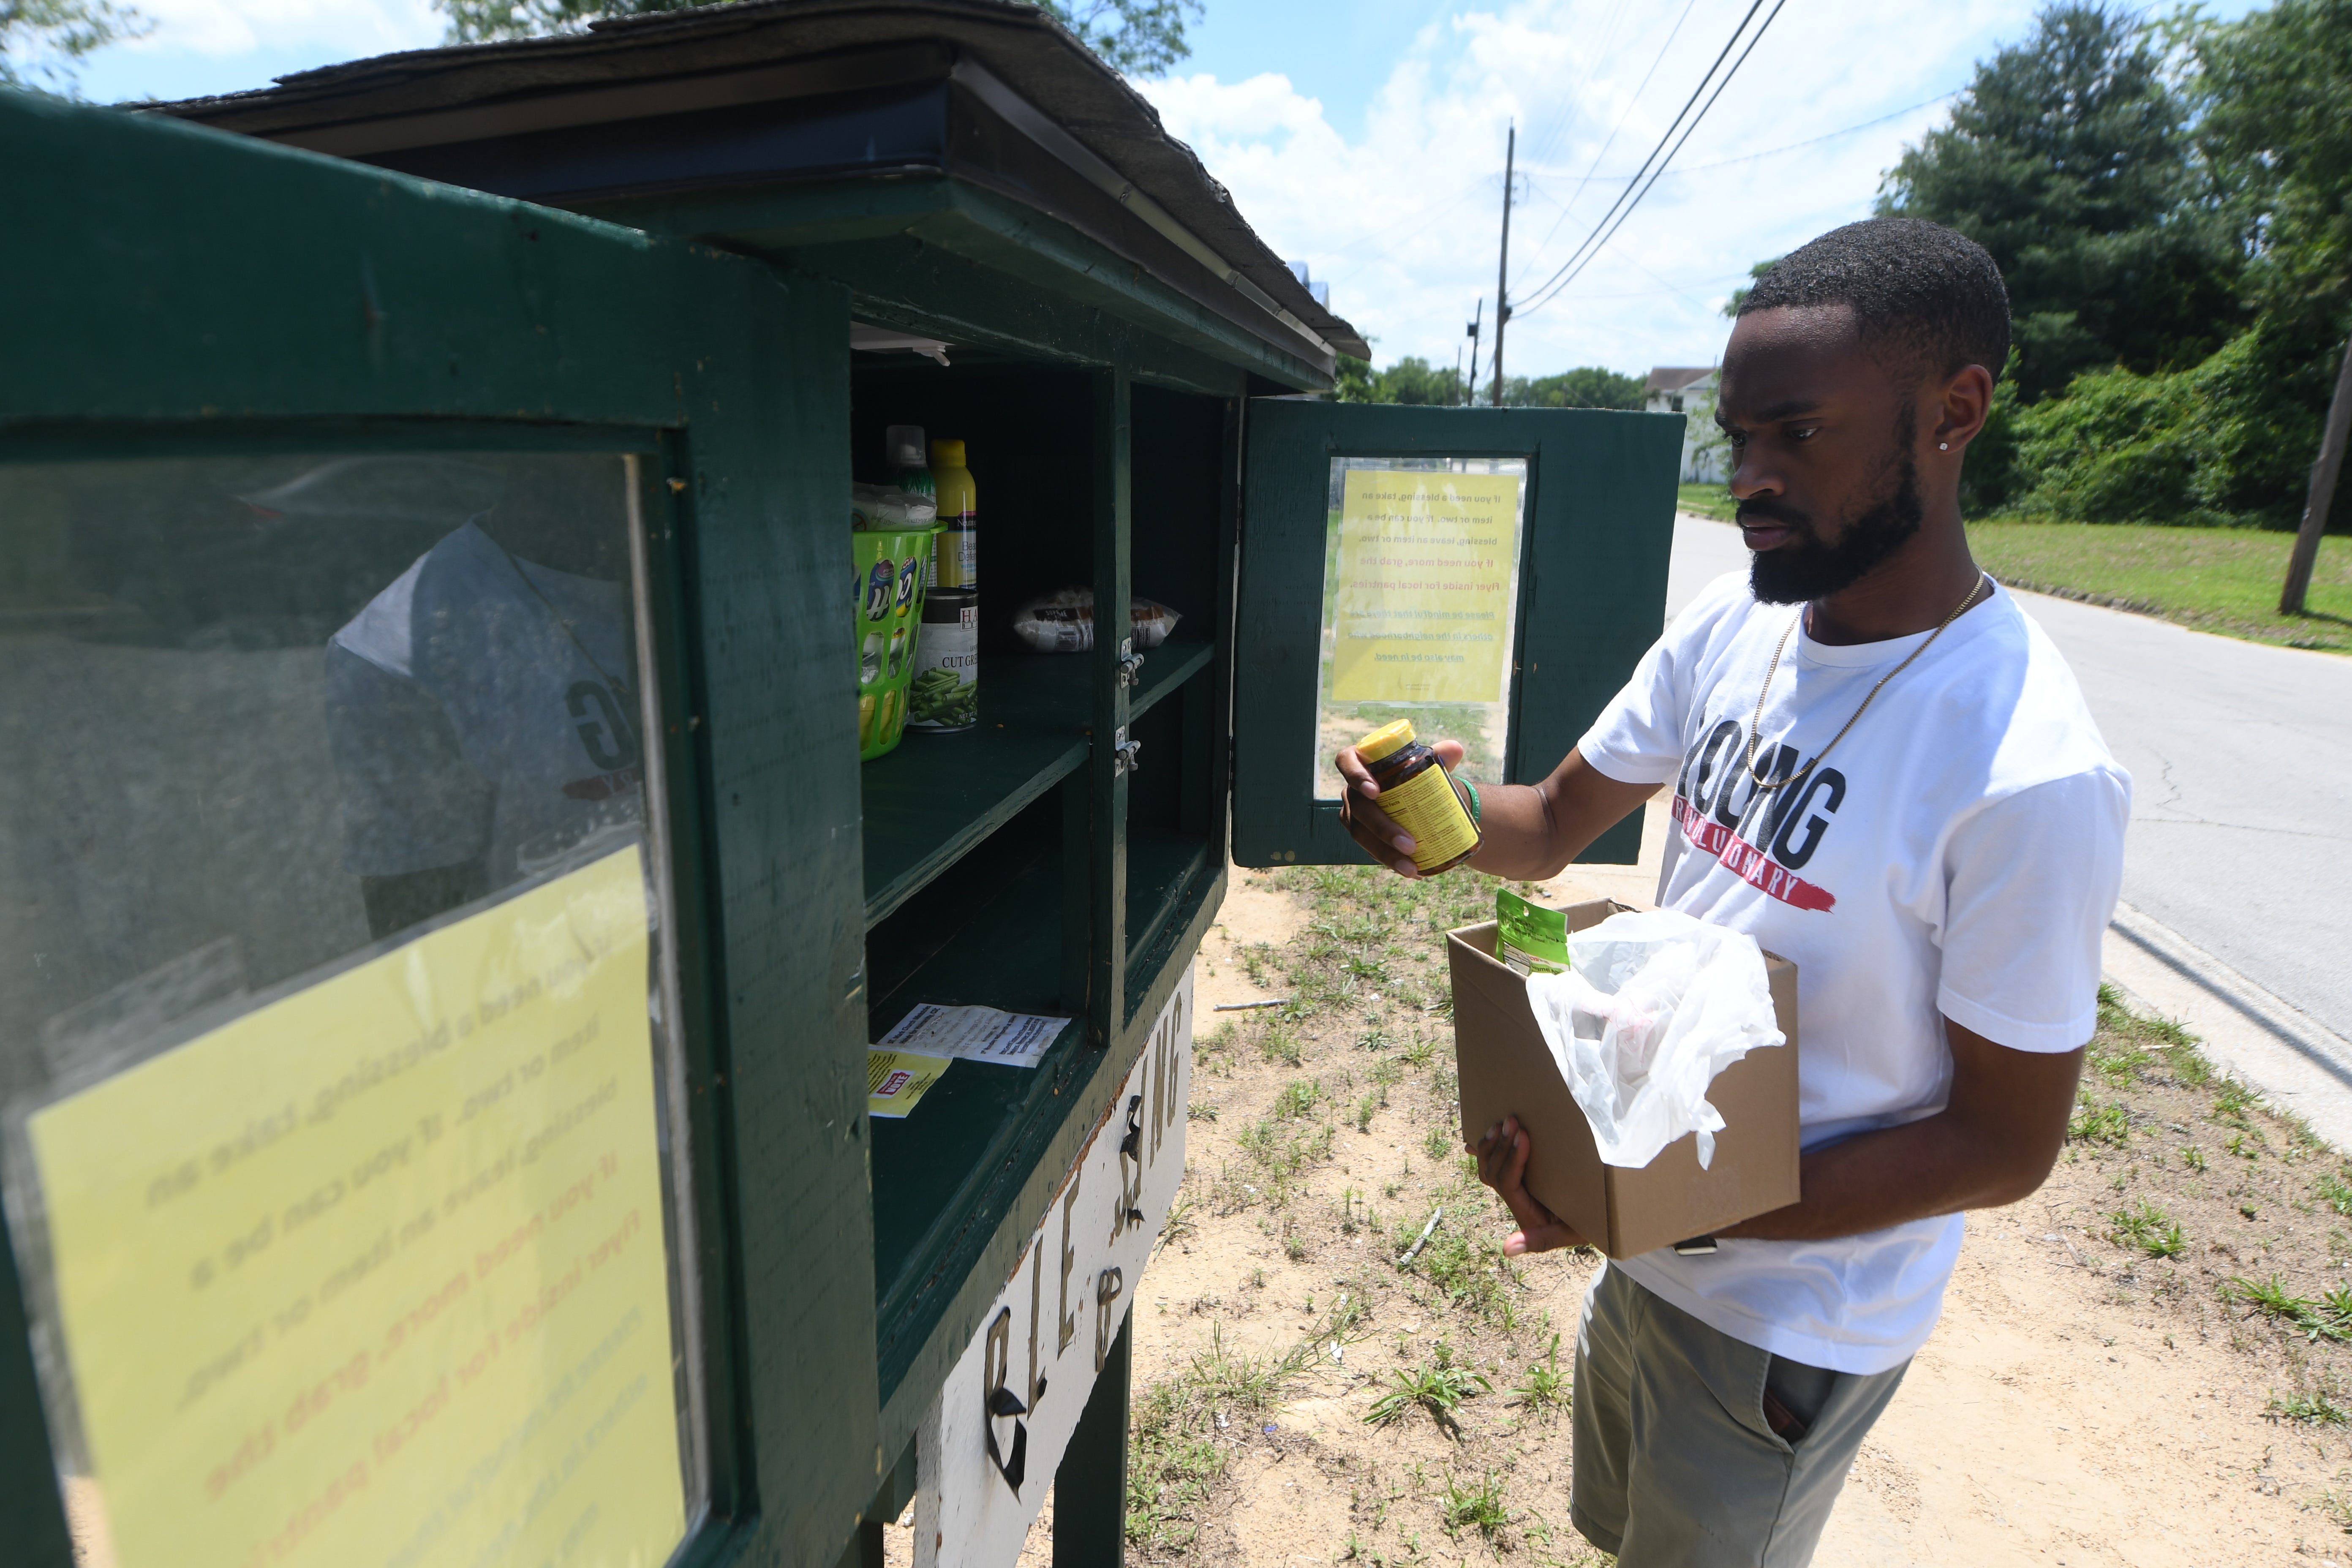 """Chris Suggs restocks the blessing box that he started though his Kinston Teens charity in Kinston, N.C., Wednesday, June 16, 2021. The box is a way for community members to donate and get various things like food and toiletries. Chris Suggs is the founder and executive director of the non-profit that started in 2014. East Kinston is one of the poorest neighborhoods in North Carolina, according to the U.S. Census Bureau, and has been declared a """"food desert"""" by the U.S. Department of Agriculture.   [MATT BORN/STARNEWS]"""